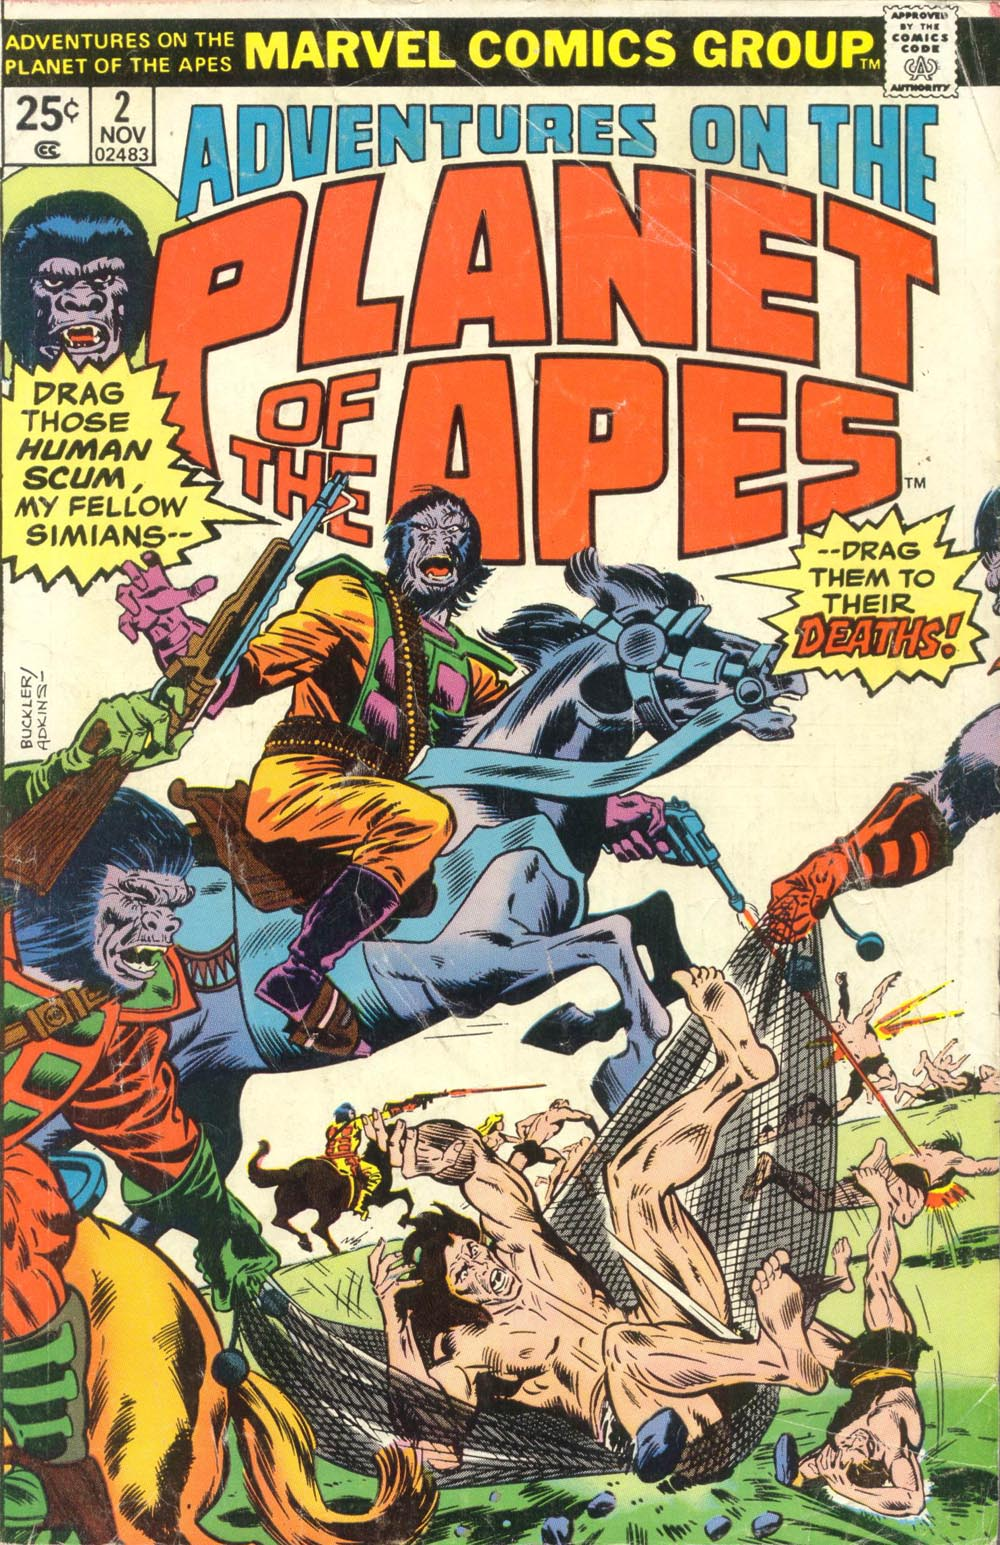 Read online Adventures on the Planet of the Apes comic -  Issue #2 - 1